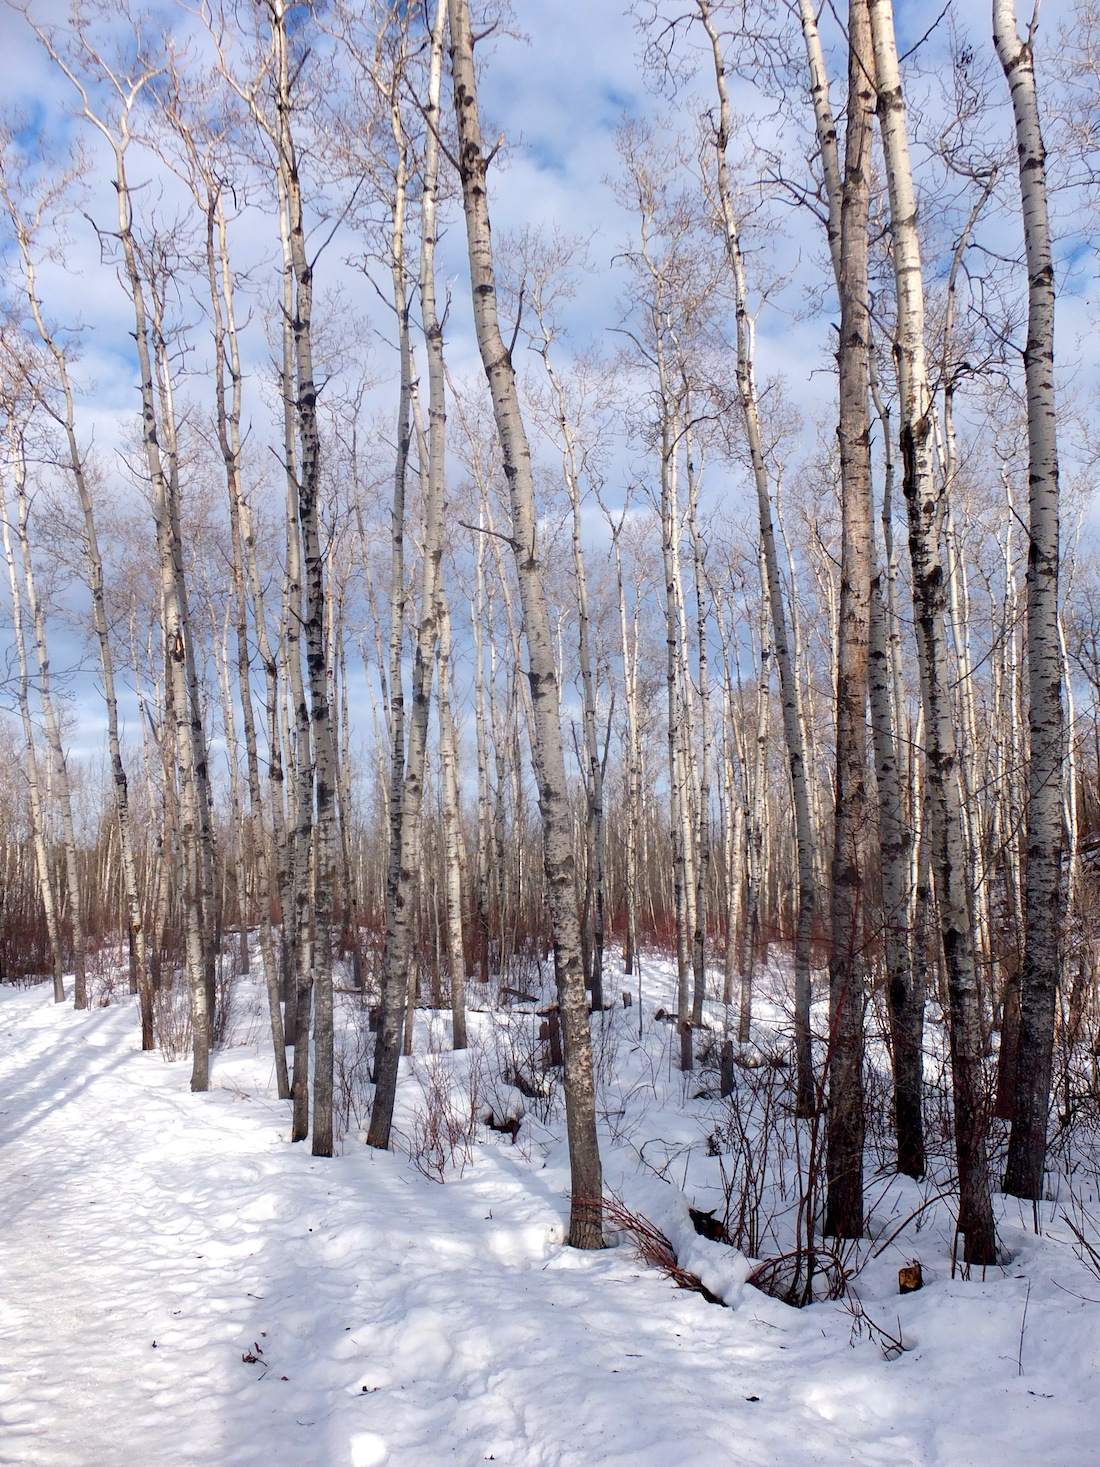 Birches in Whitemud Ravine